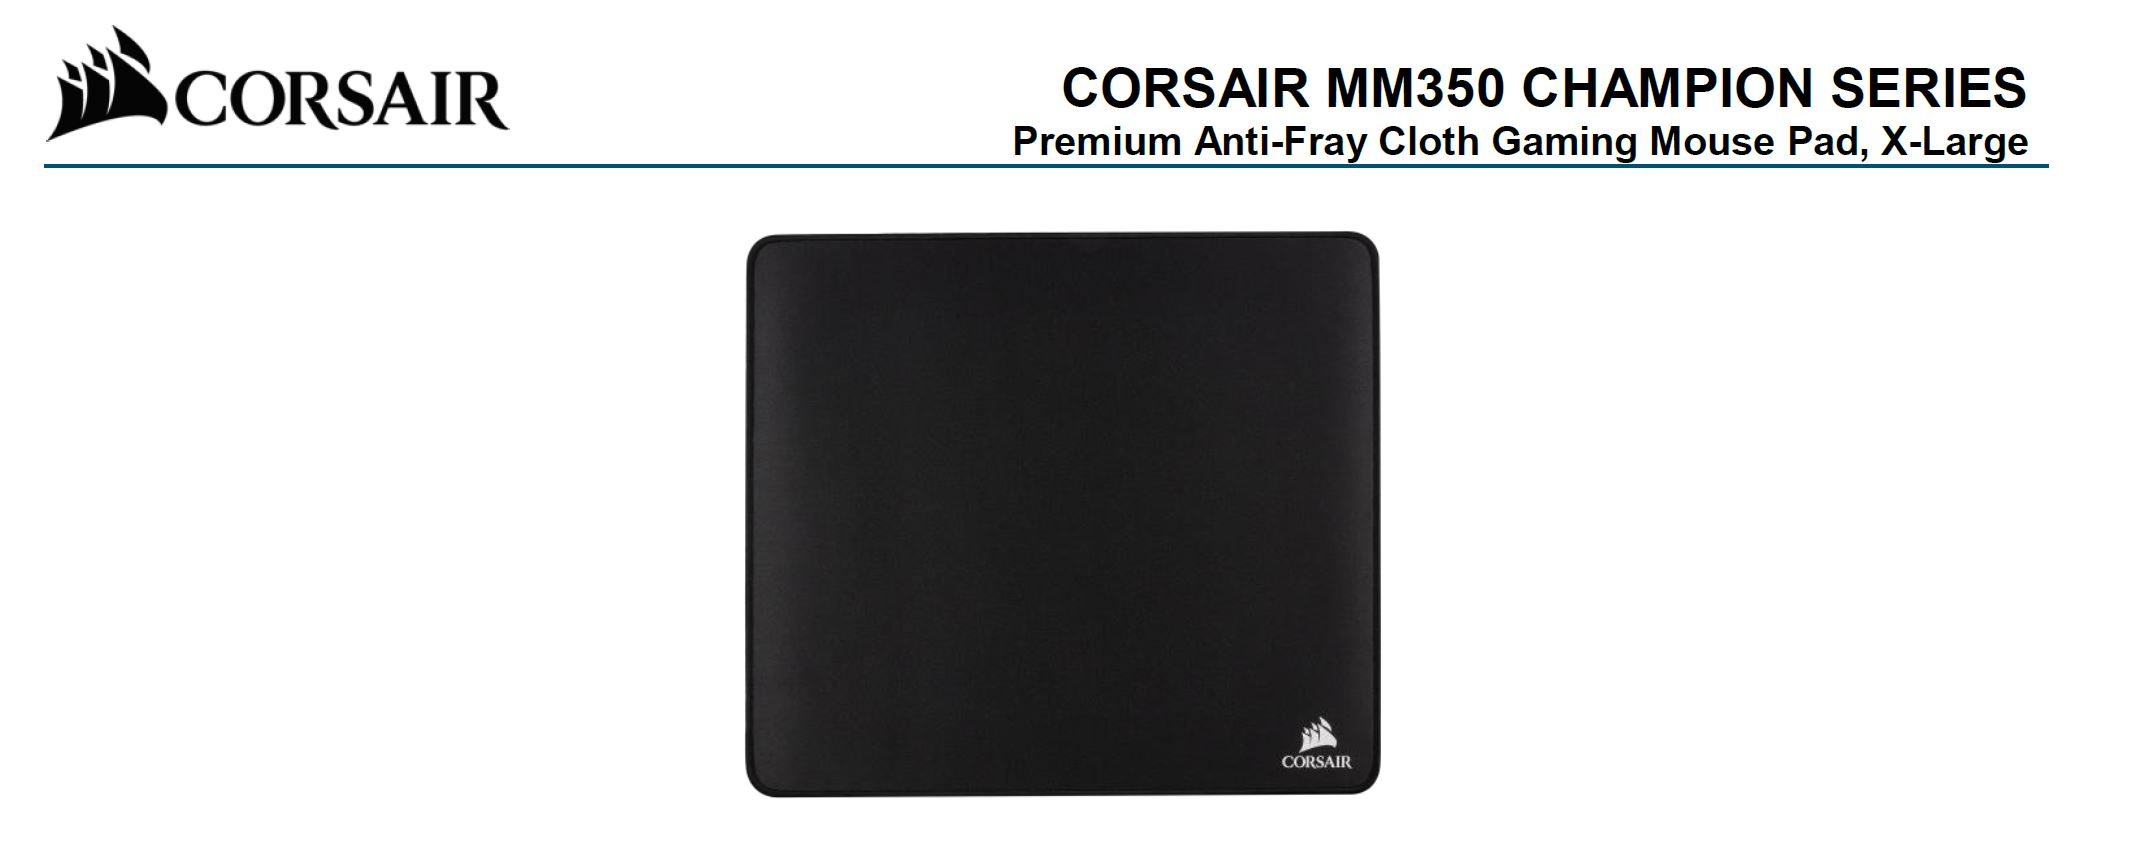 Corsair MM350 Champion Series X-Large Anti-Fray Cloth Gaming Mouse Pad. 450x400mm 2 Years Warranty